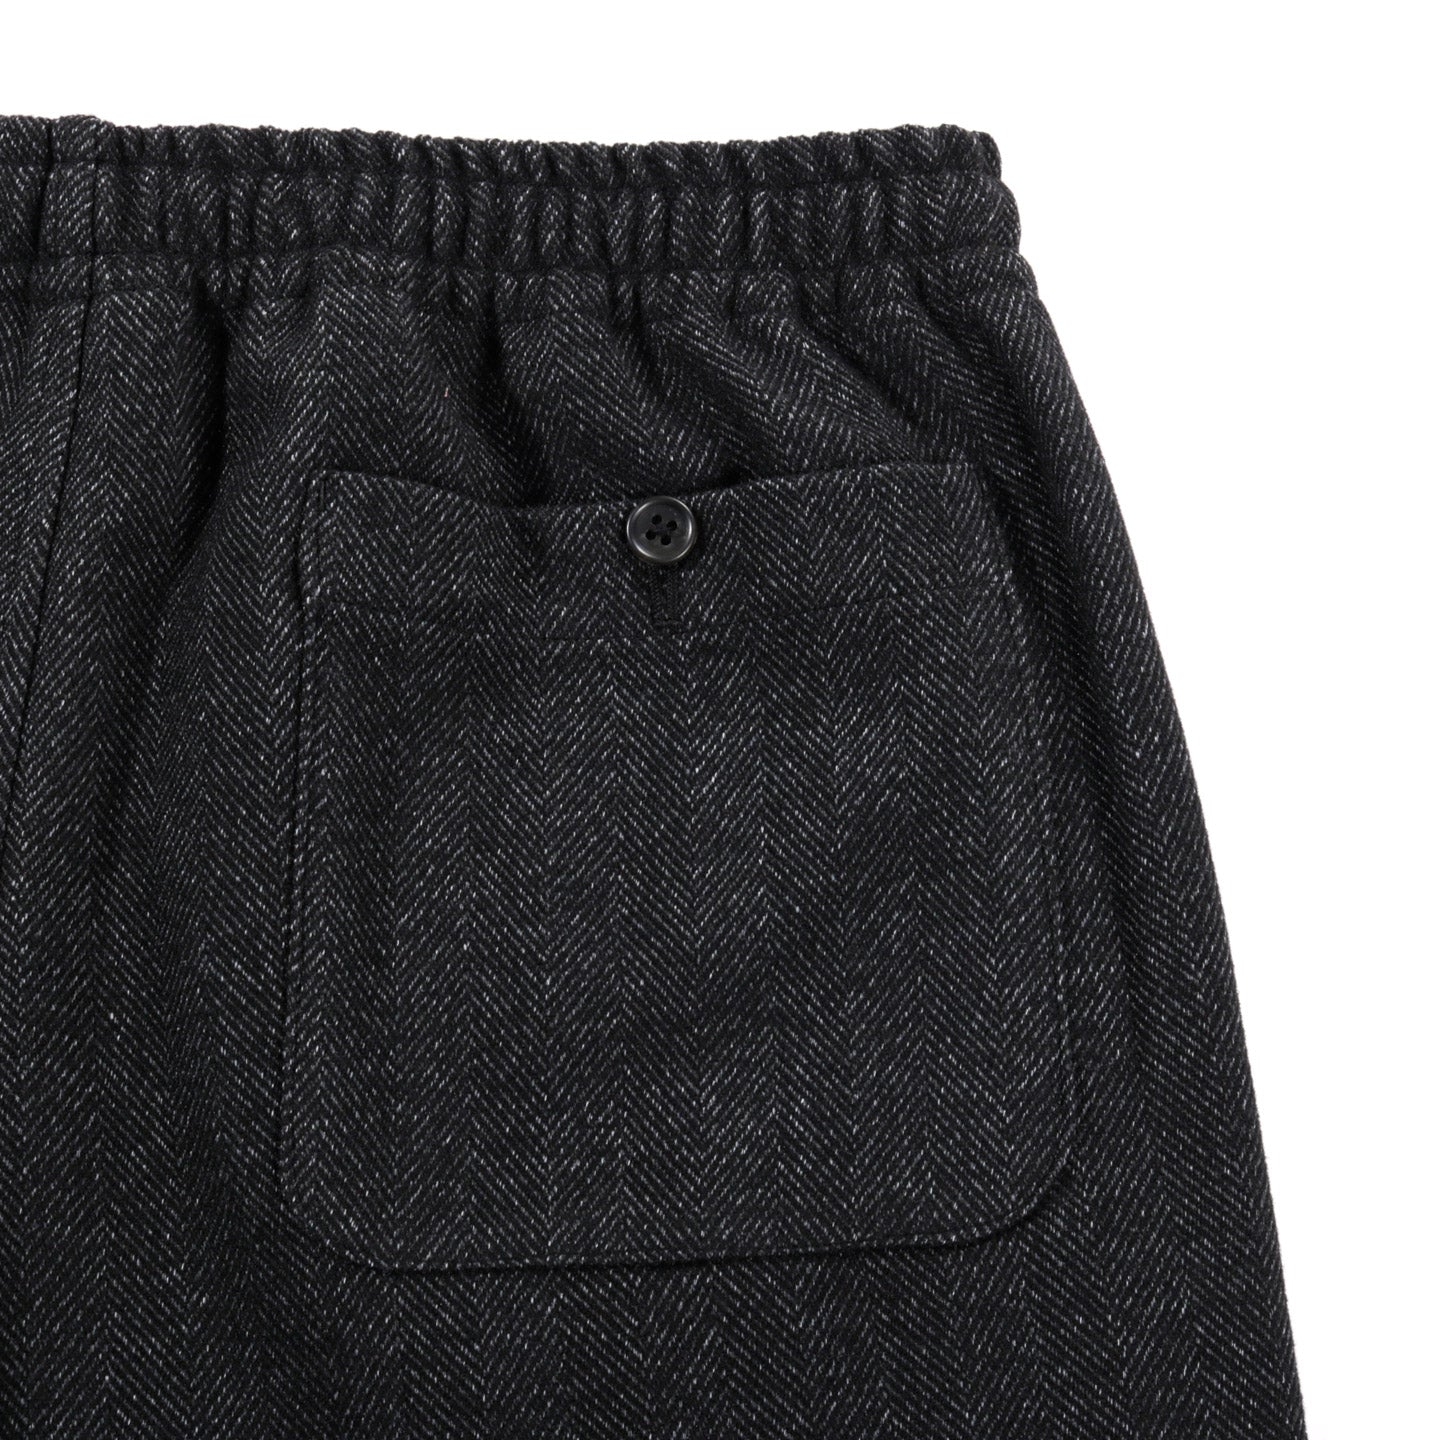 THE CONSPIRES HERRINGBONE EASY PANT CHARCOAL